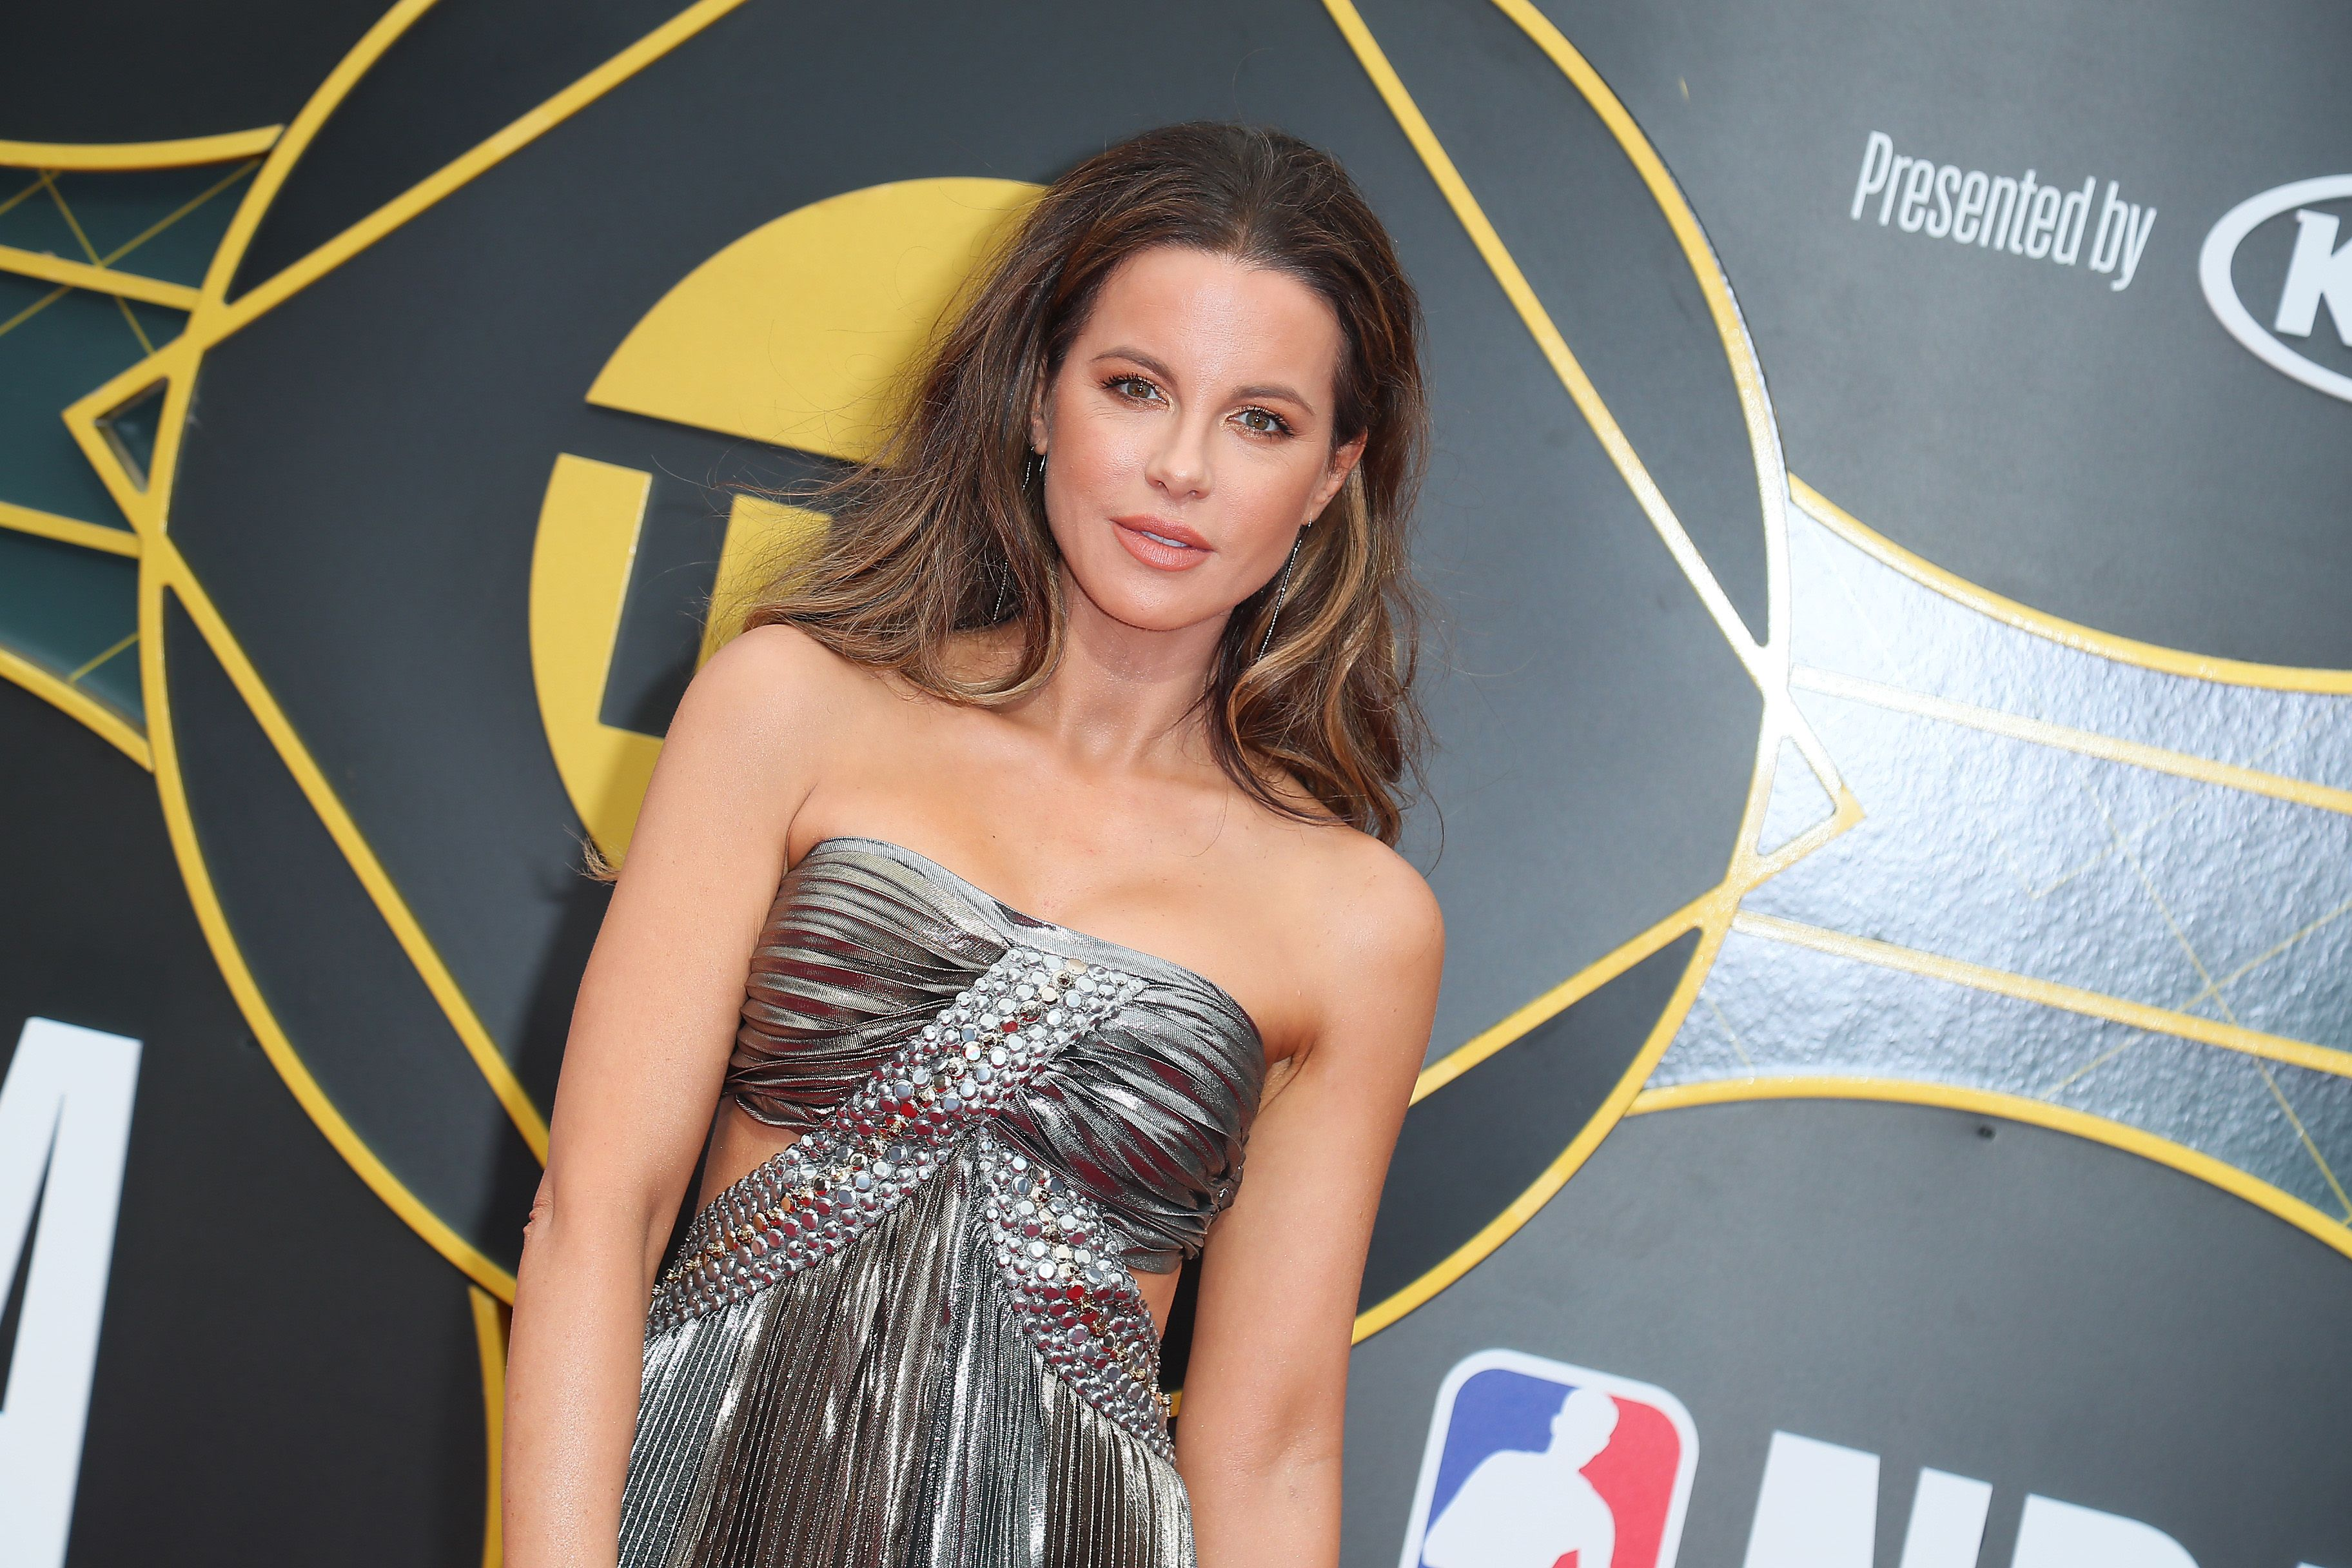 Kate Beckinsale Shows Off Her Incredibly Toned Legs And Abs In Instagram Photo